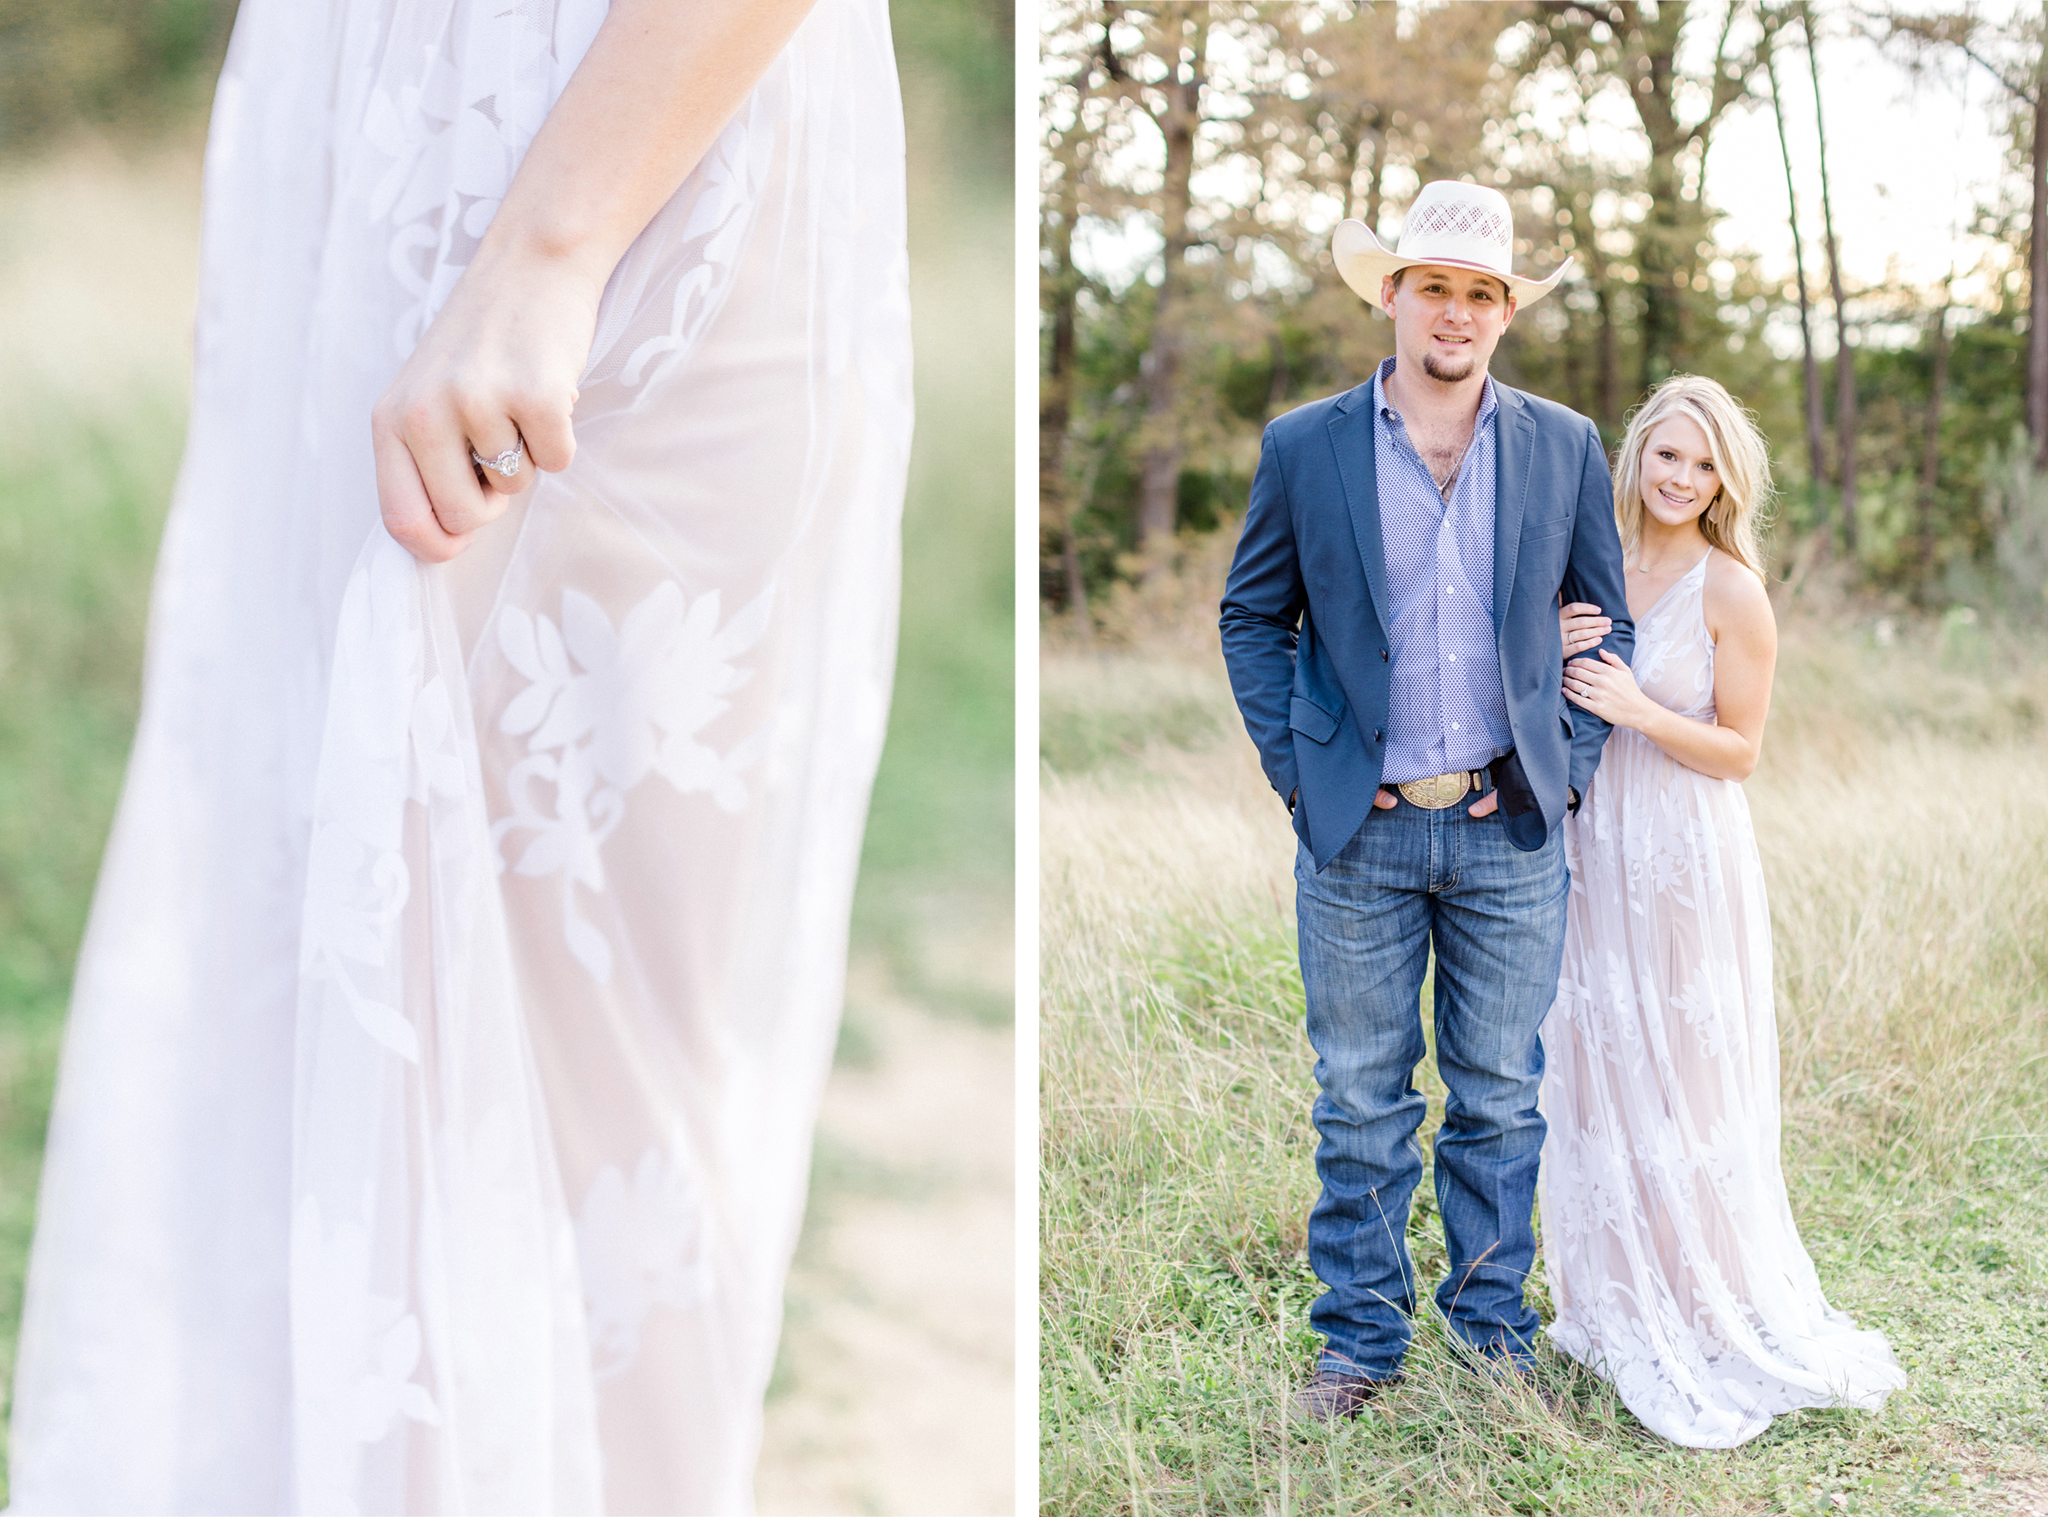 Engagement session engagement photos Texas hill country San Antonio Austin Dallas Houston Spring Branch Helotes New Braunfels wedding photographer engagement photographer Texas hill country photo session Boerne Texas wedding photographer Cibolo Nature center engagement session